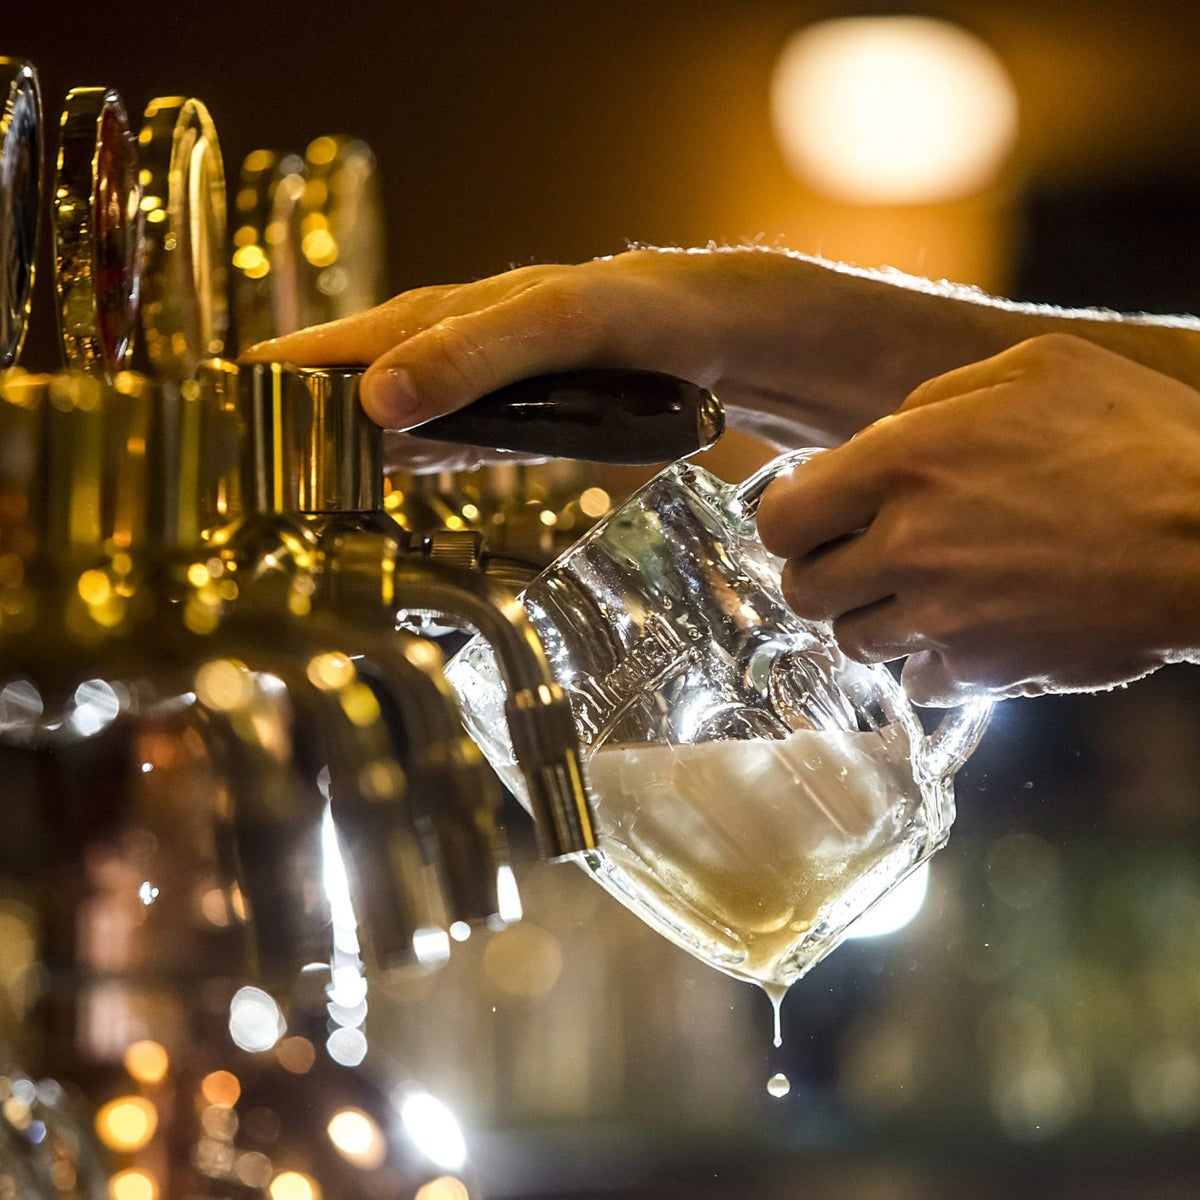 A barman pours a glass of beer from a tap (illustrative).